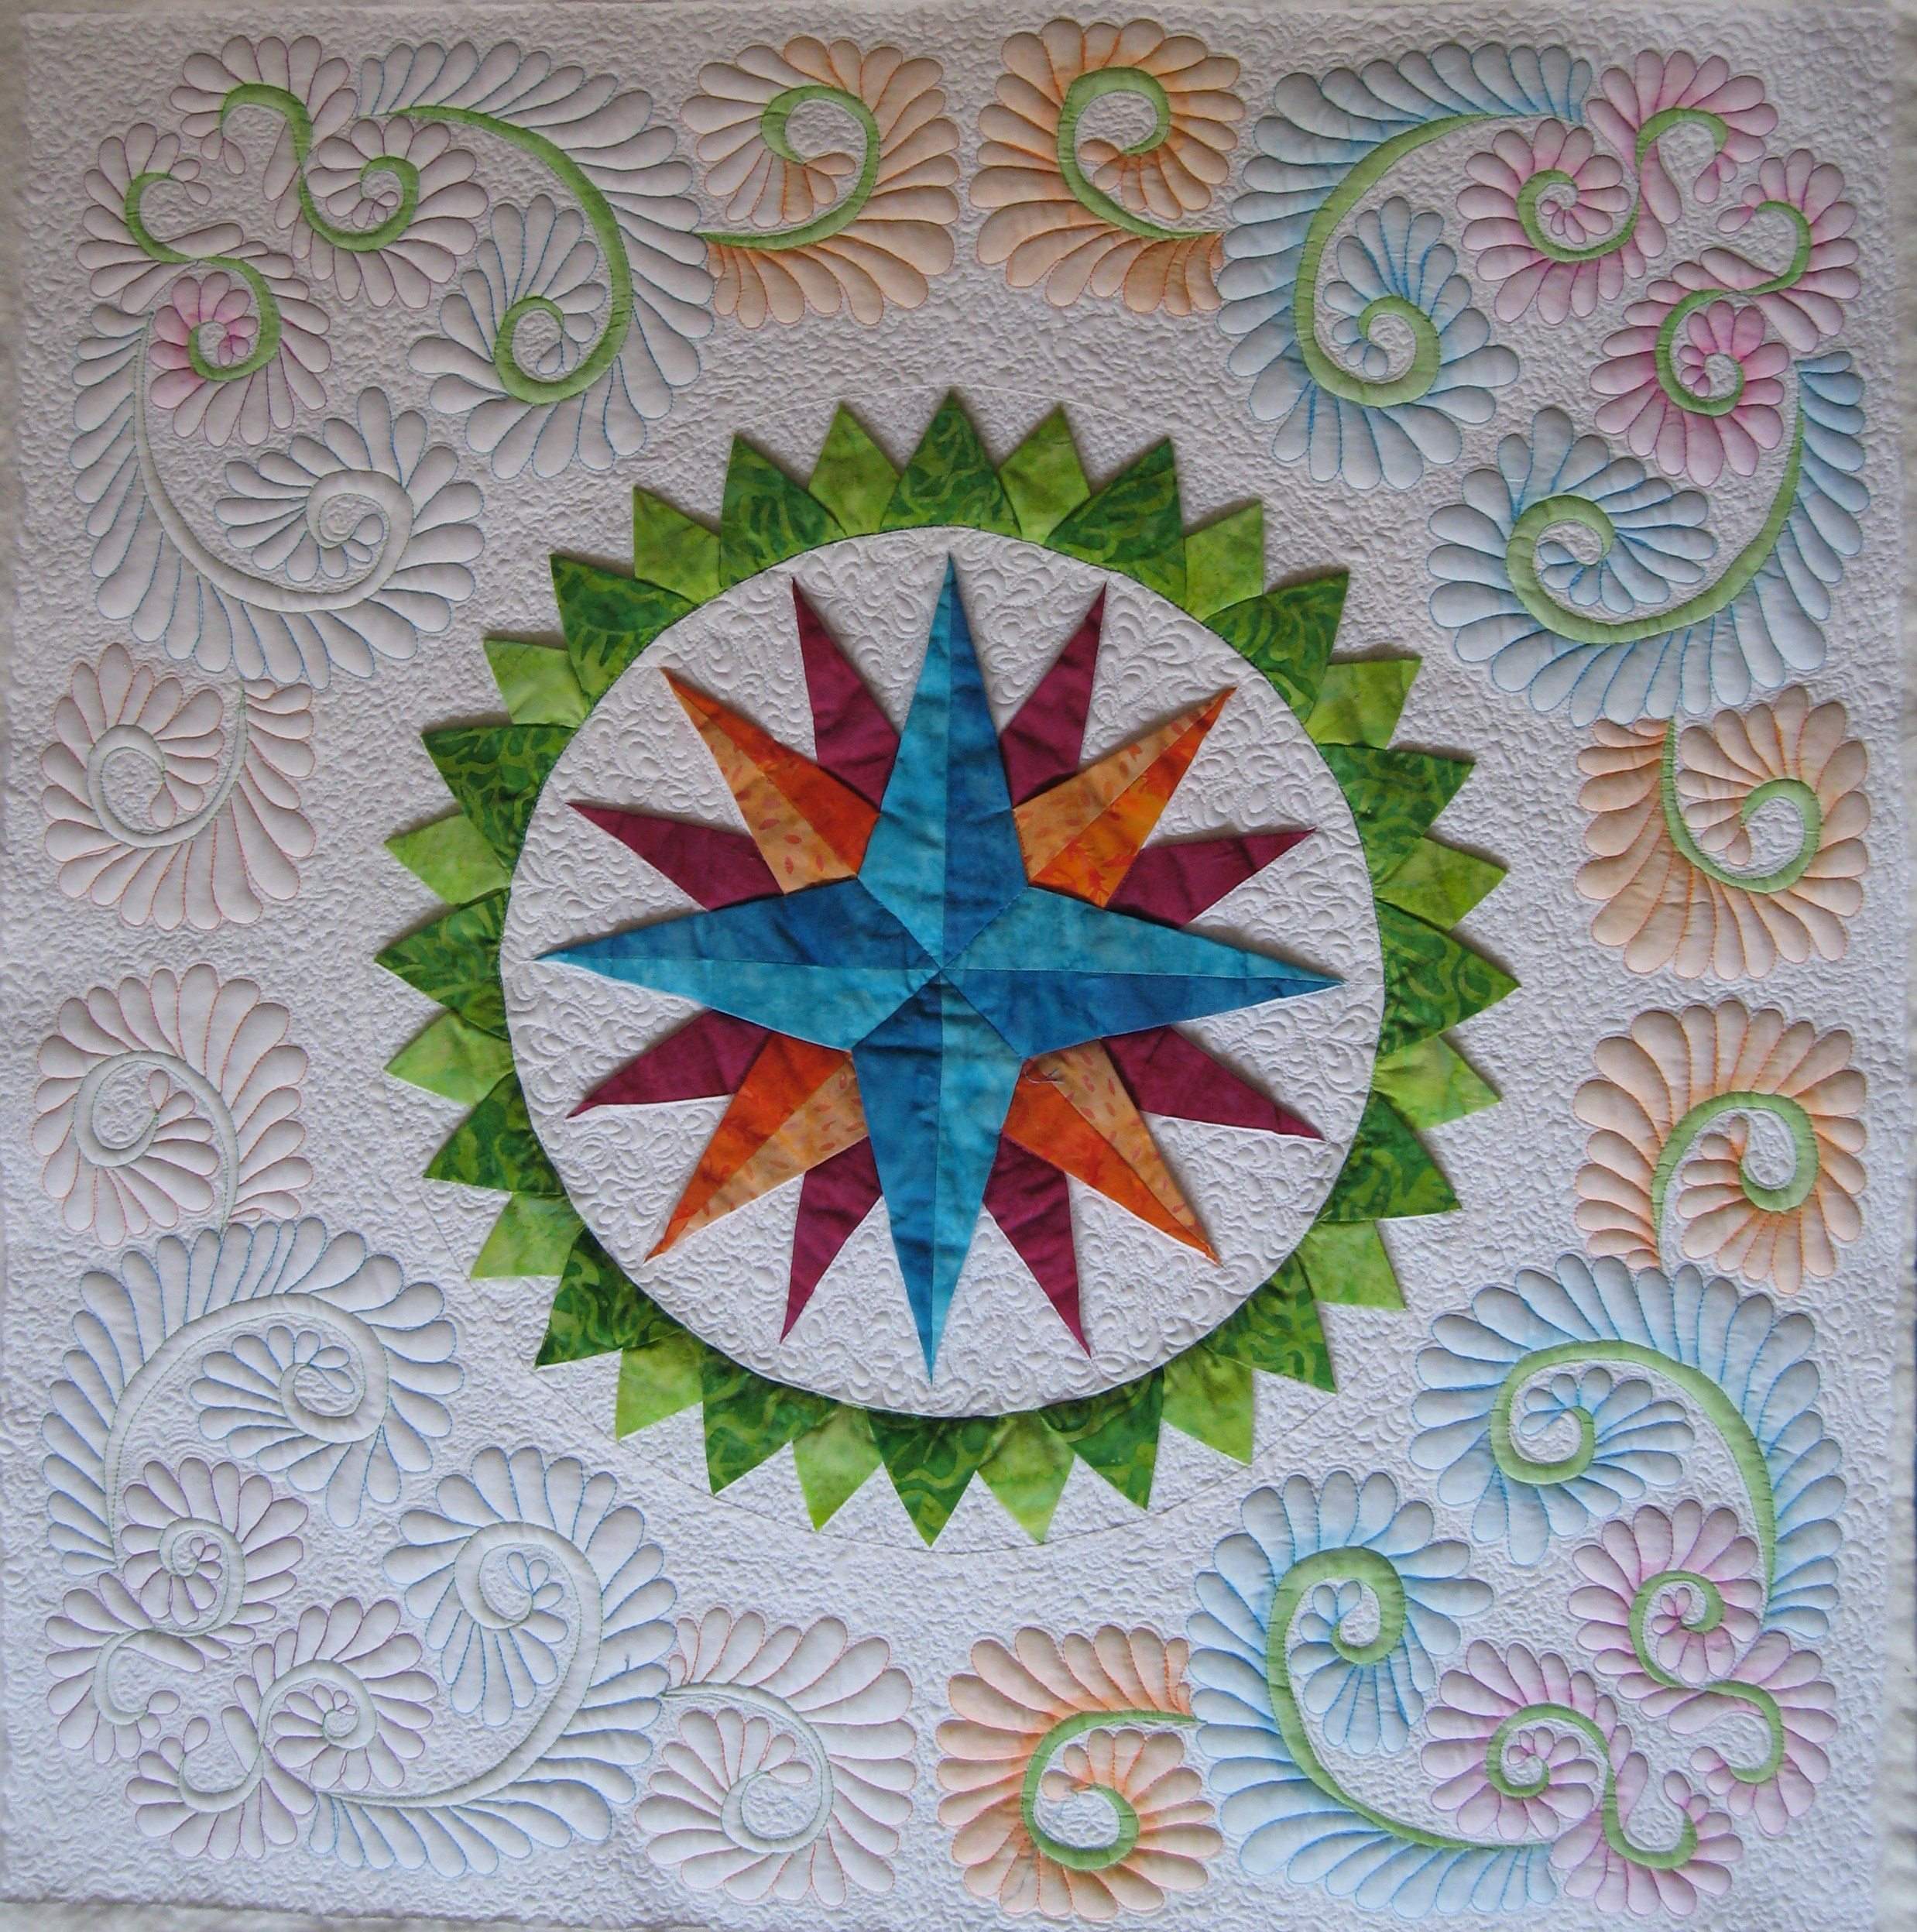 Quilt 3 D Mariners Compass Mary Annes Quilting Adventures And More